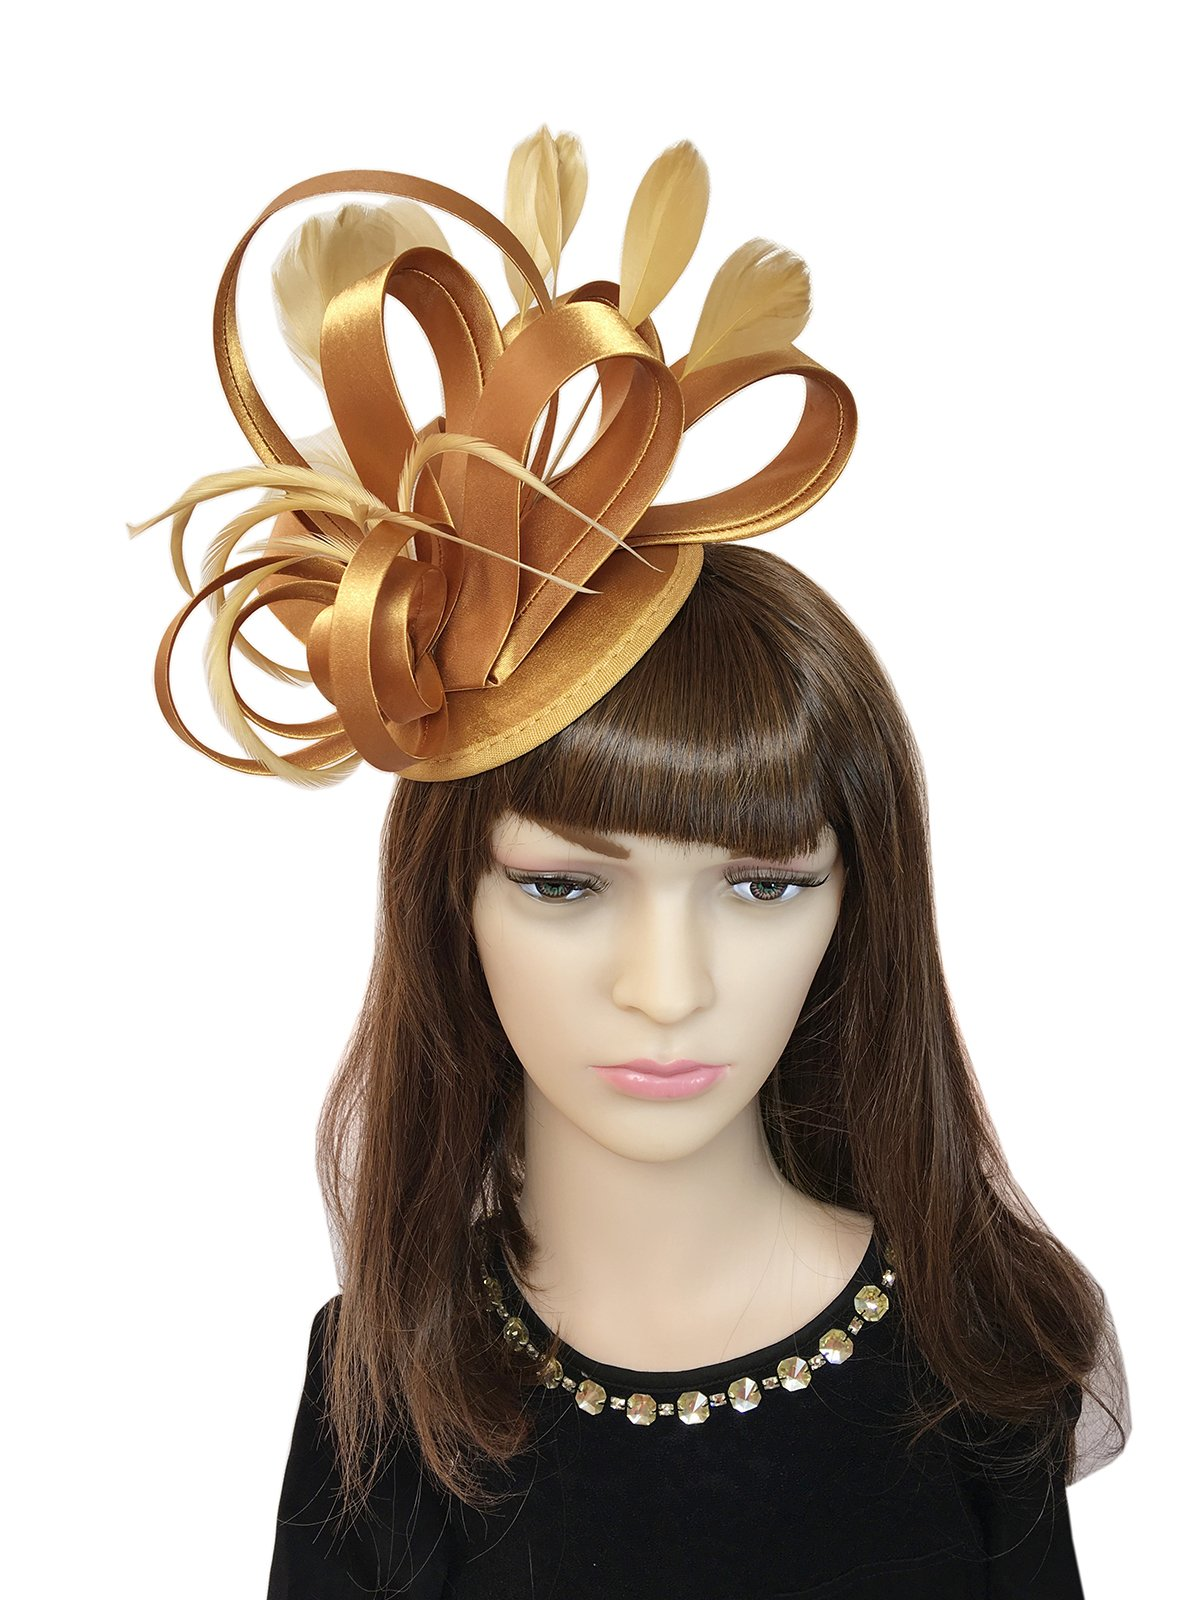 YSJOY Womens Fascinator Hair Clip Derby Hat For 50th Birthday Anniversary Cocktail Party Headwear (Gold) by YSJOY Accessory